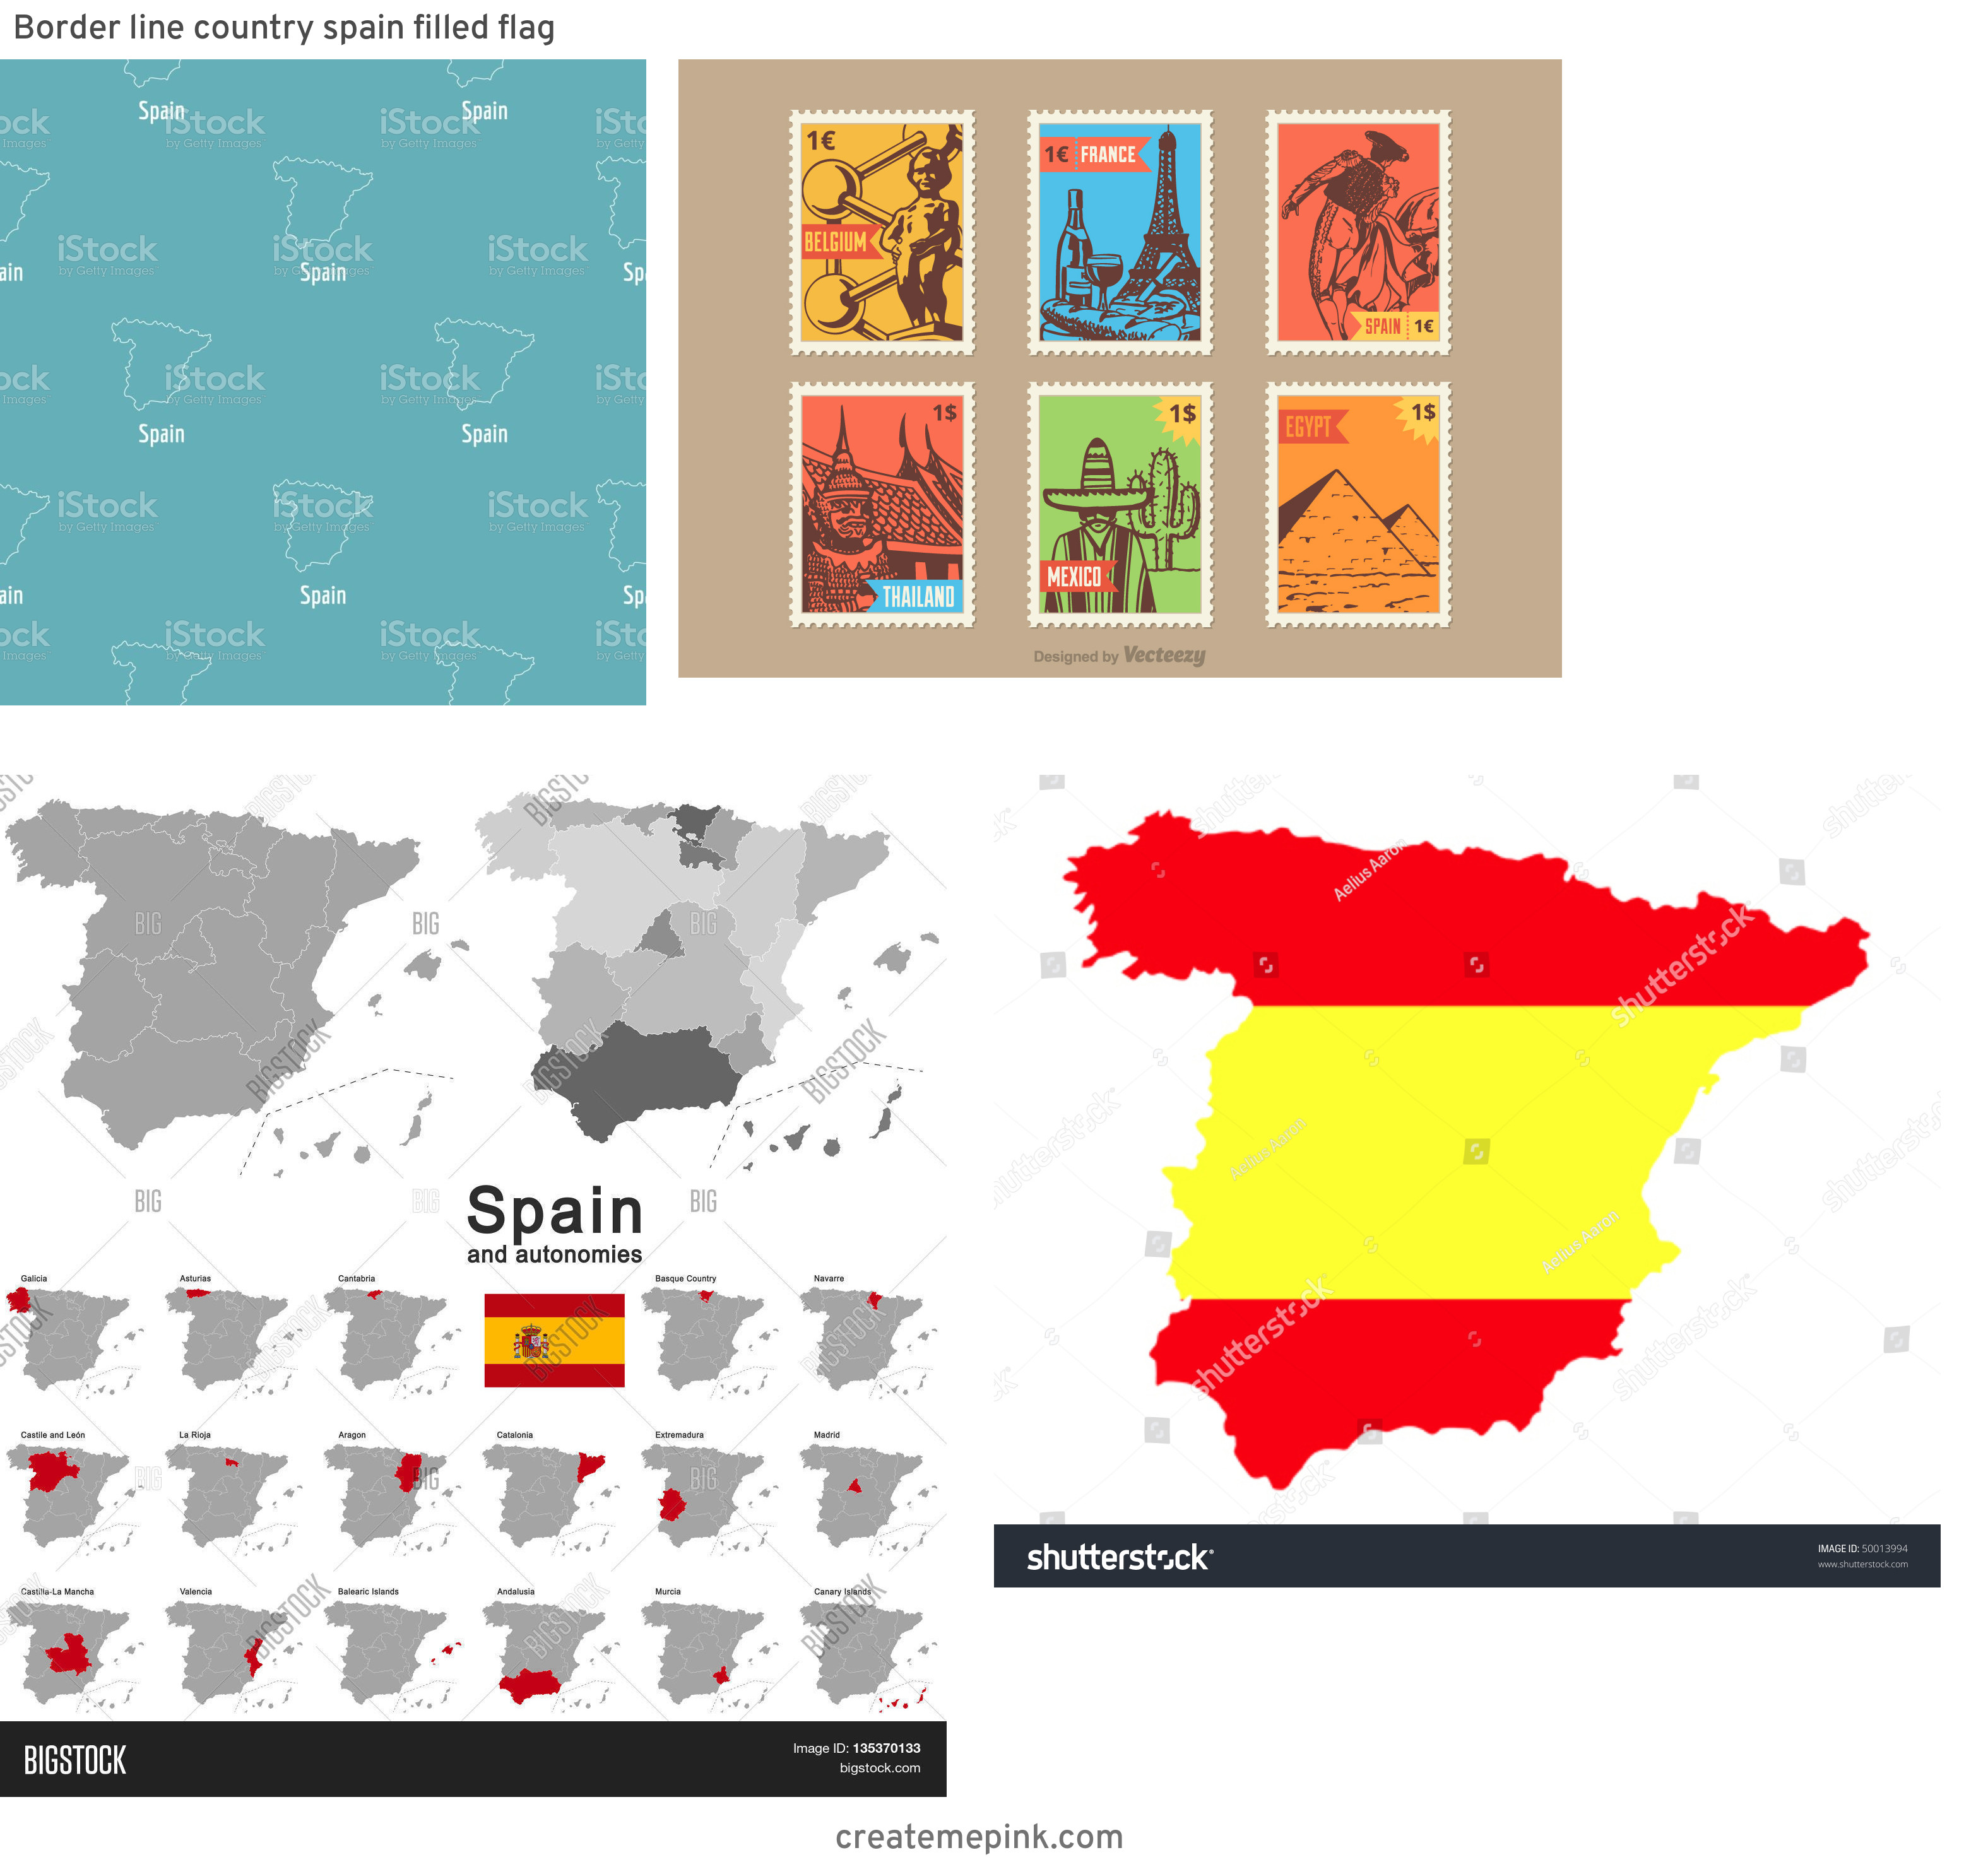 Spain Country Vectors Line: Border Line Country Spain Filled Flag